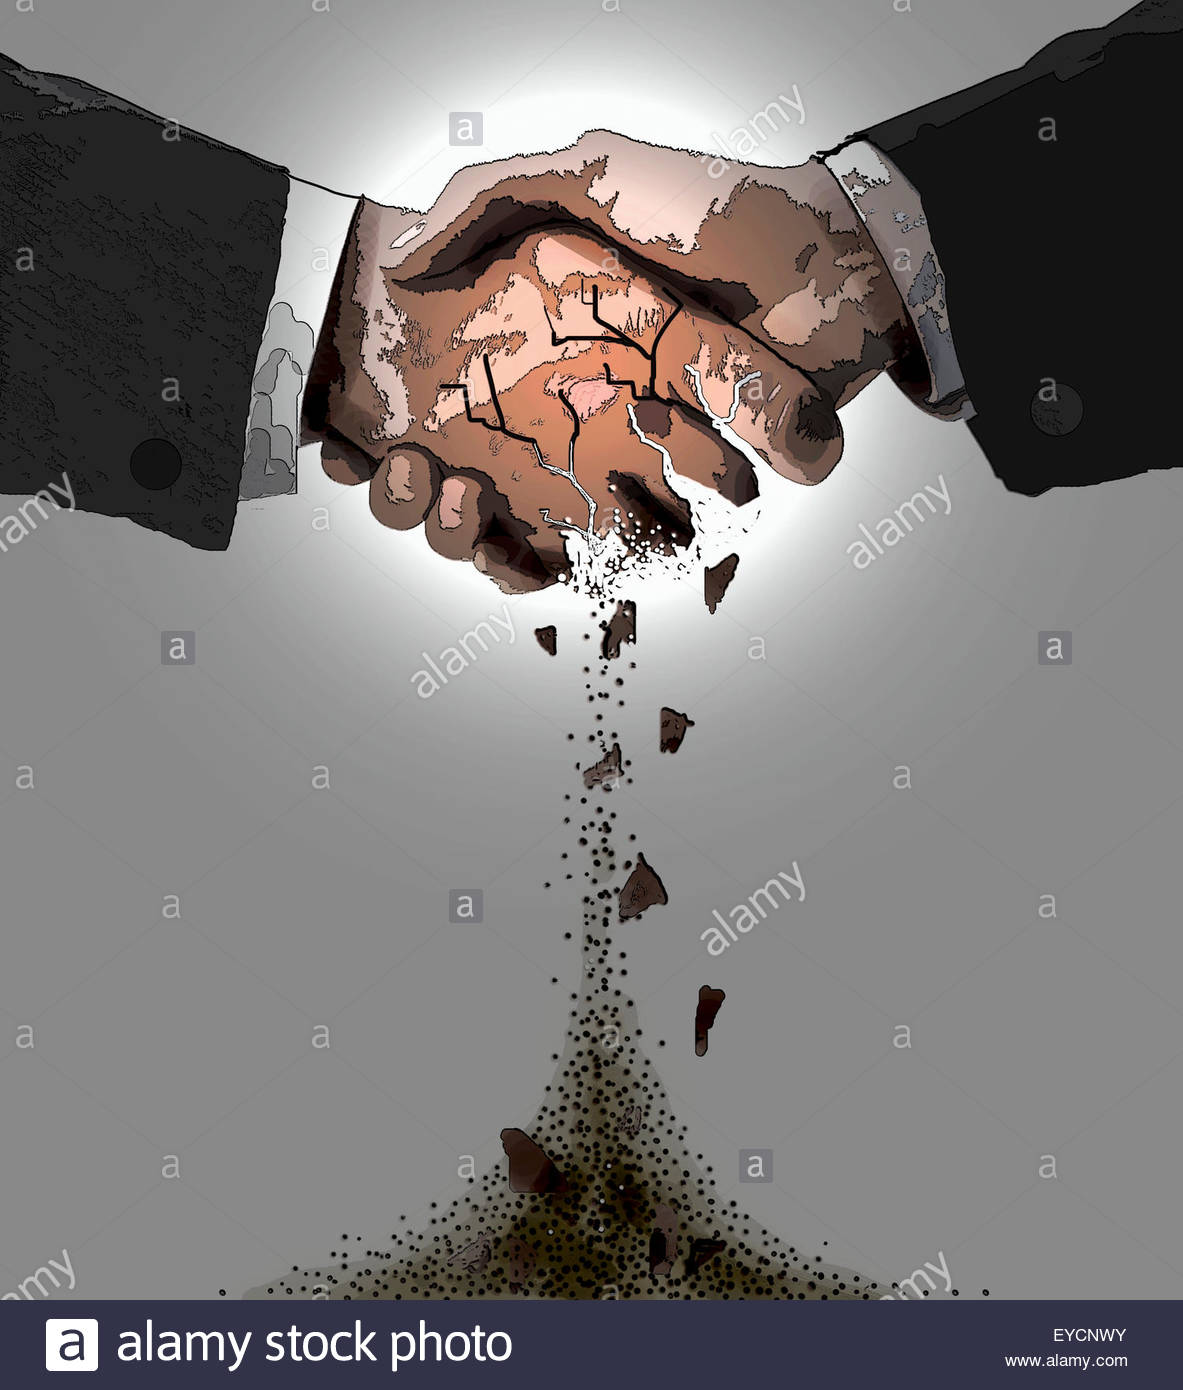 Close up of handshake crumbling - Stock Image